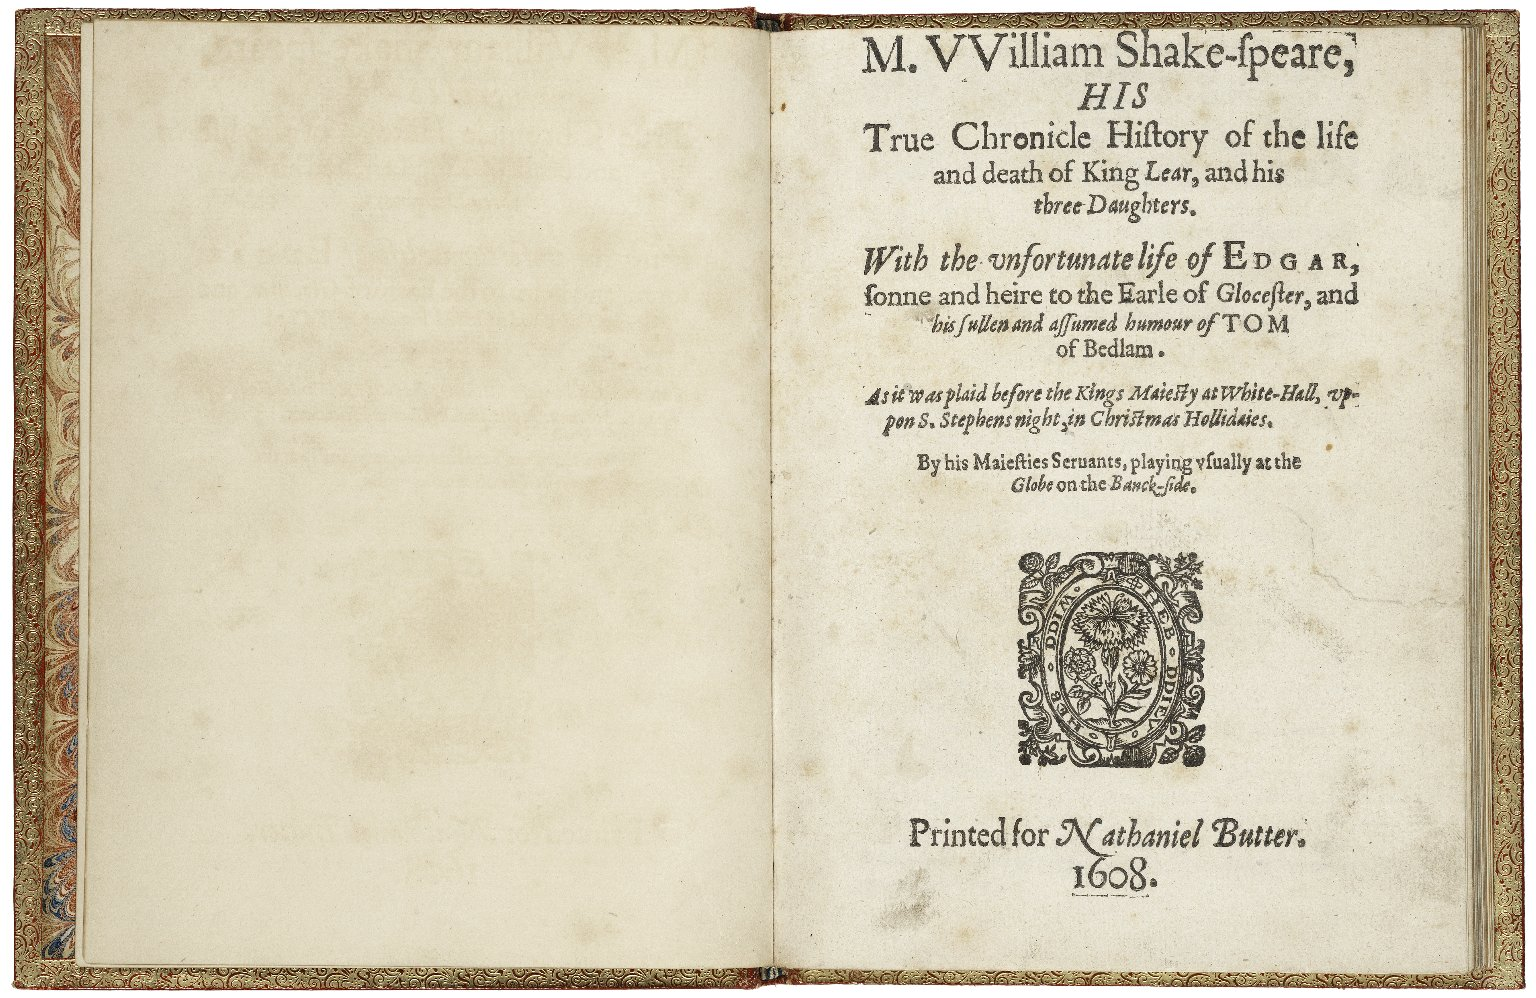 [King Lear] M. VVilliam Shake-speare, his true chronicle history of the life and death of King Lear, and his three daughters.